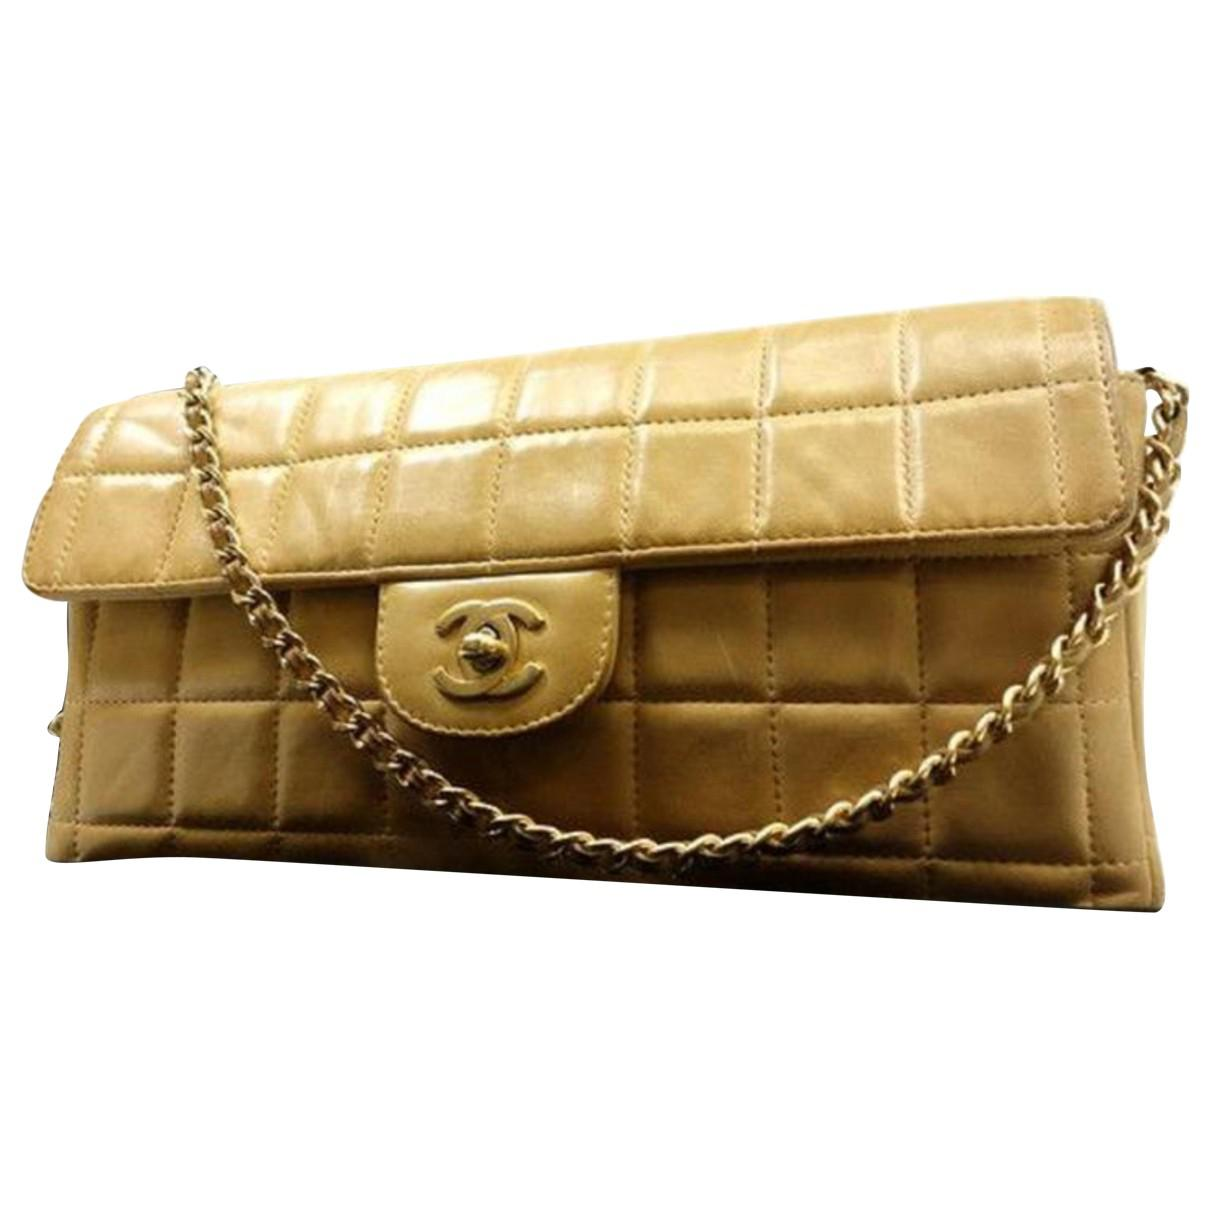 dc8131d81407 Lyst - Chanel Pre-owned East West Chocolate Bar Patent Leather ...